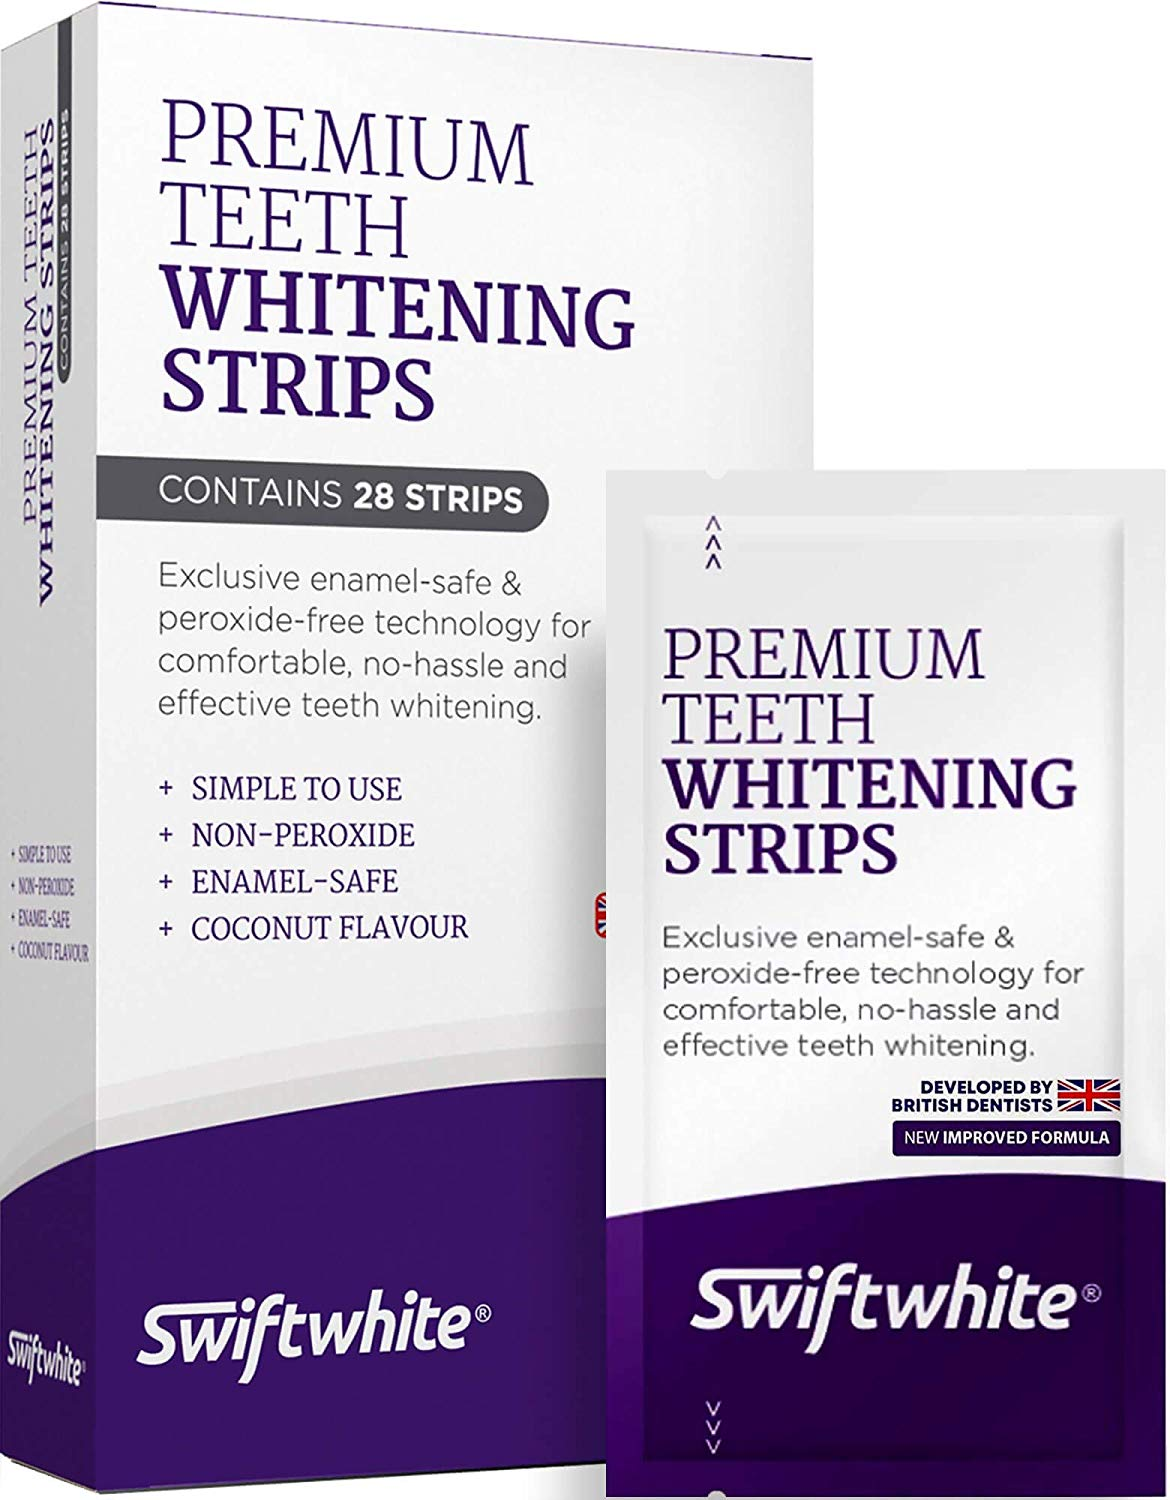 SwiftWhite Premium Non Peroxide Teeth Whitening Strips box